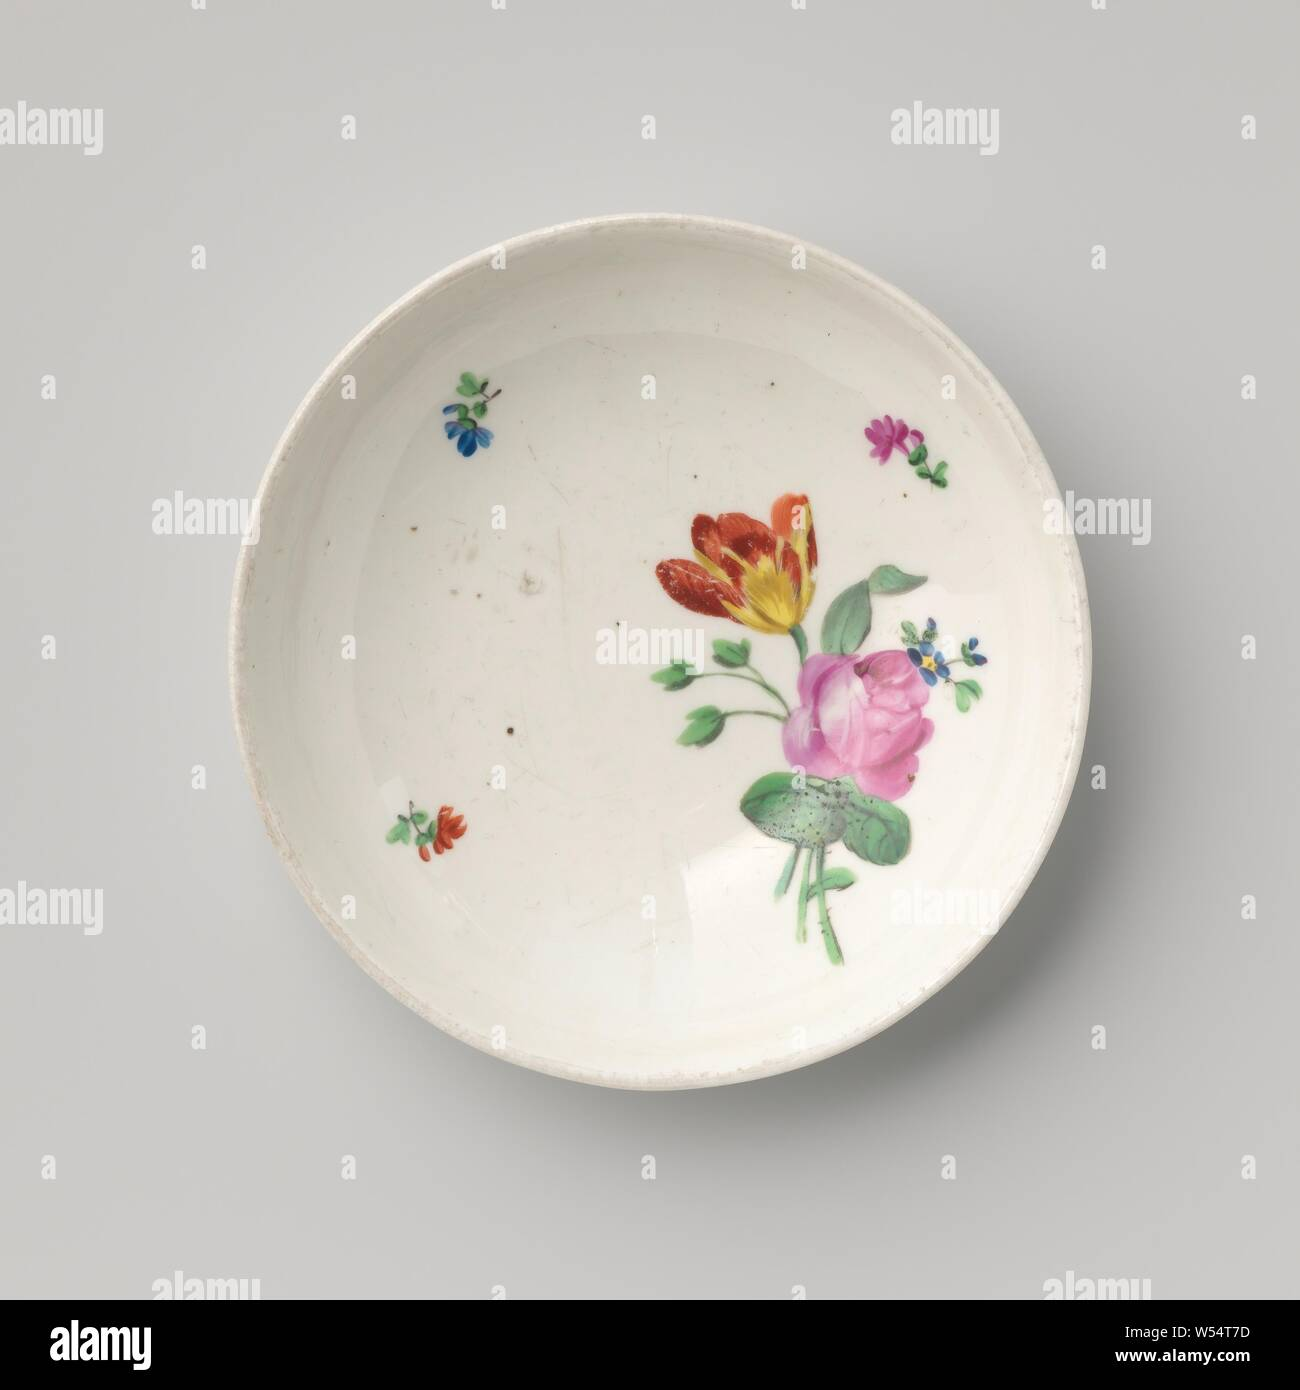 Saucer with a bouquet and flower sprays, Porcelain dish with